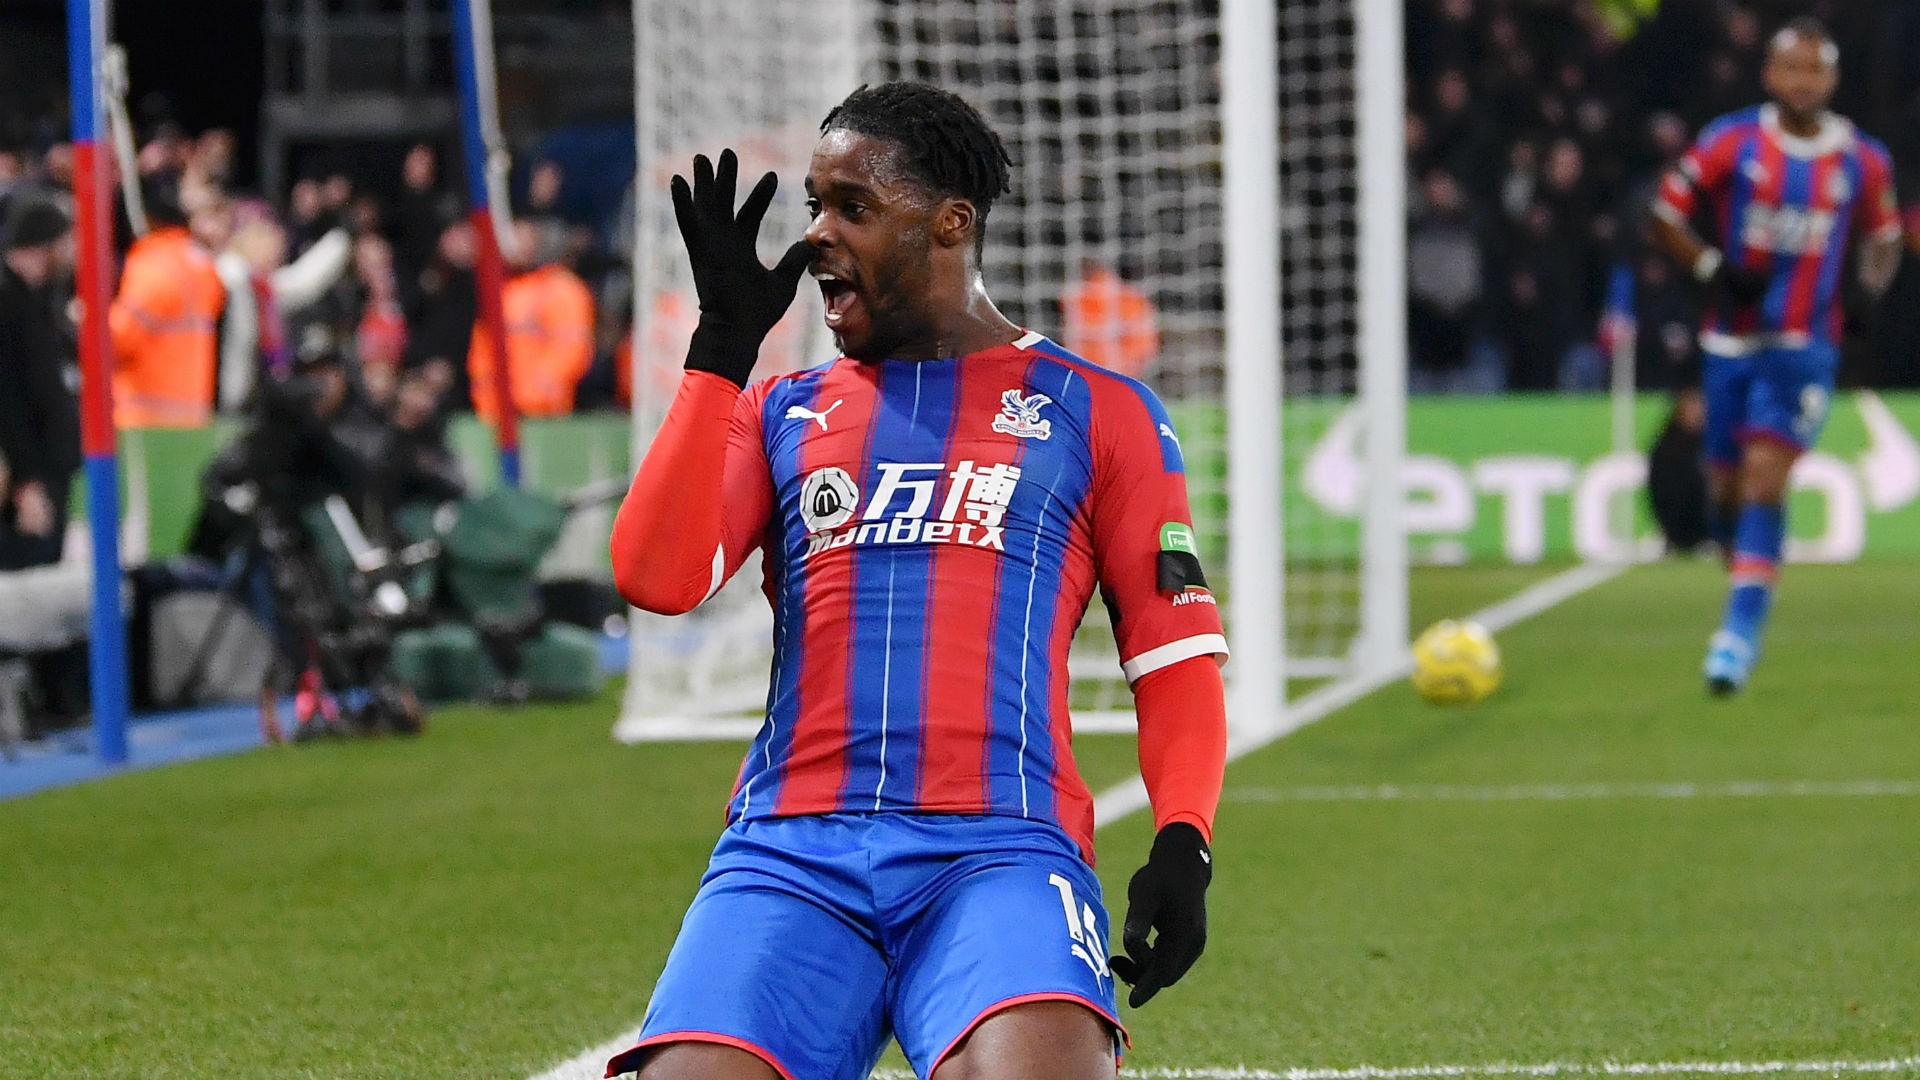 Crystal Palace 1-0 Bournemouth: Super-sub Schlupp proves the difference